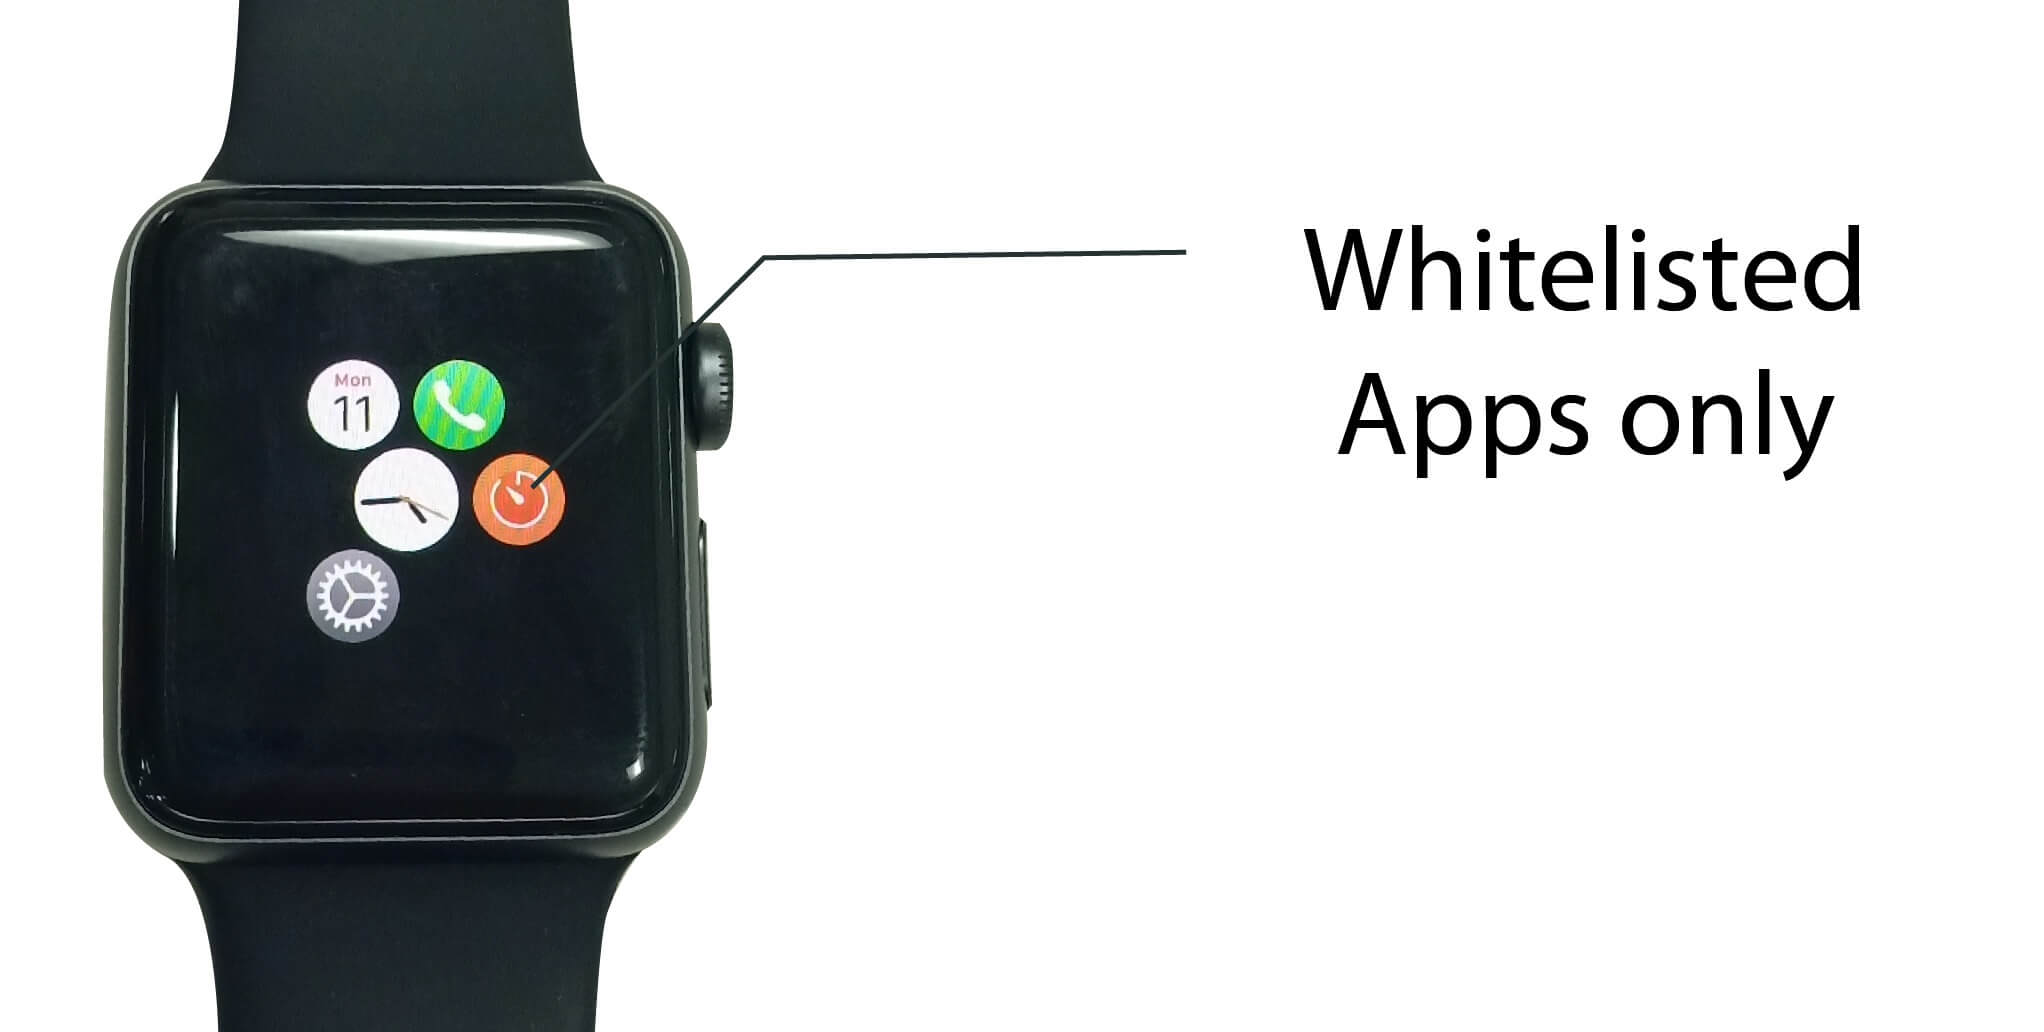 Whitelisted Apps Apple Watch